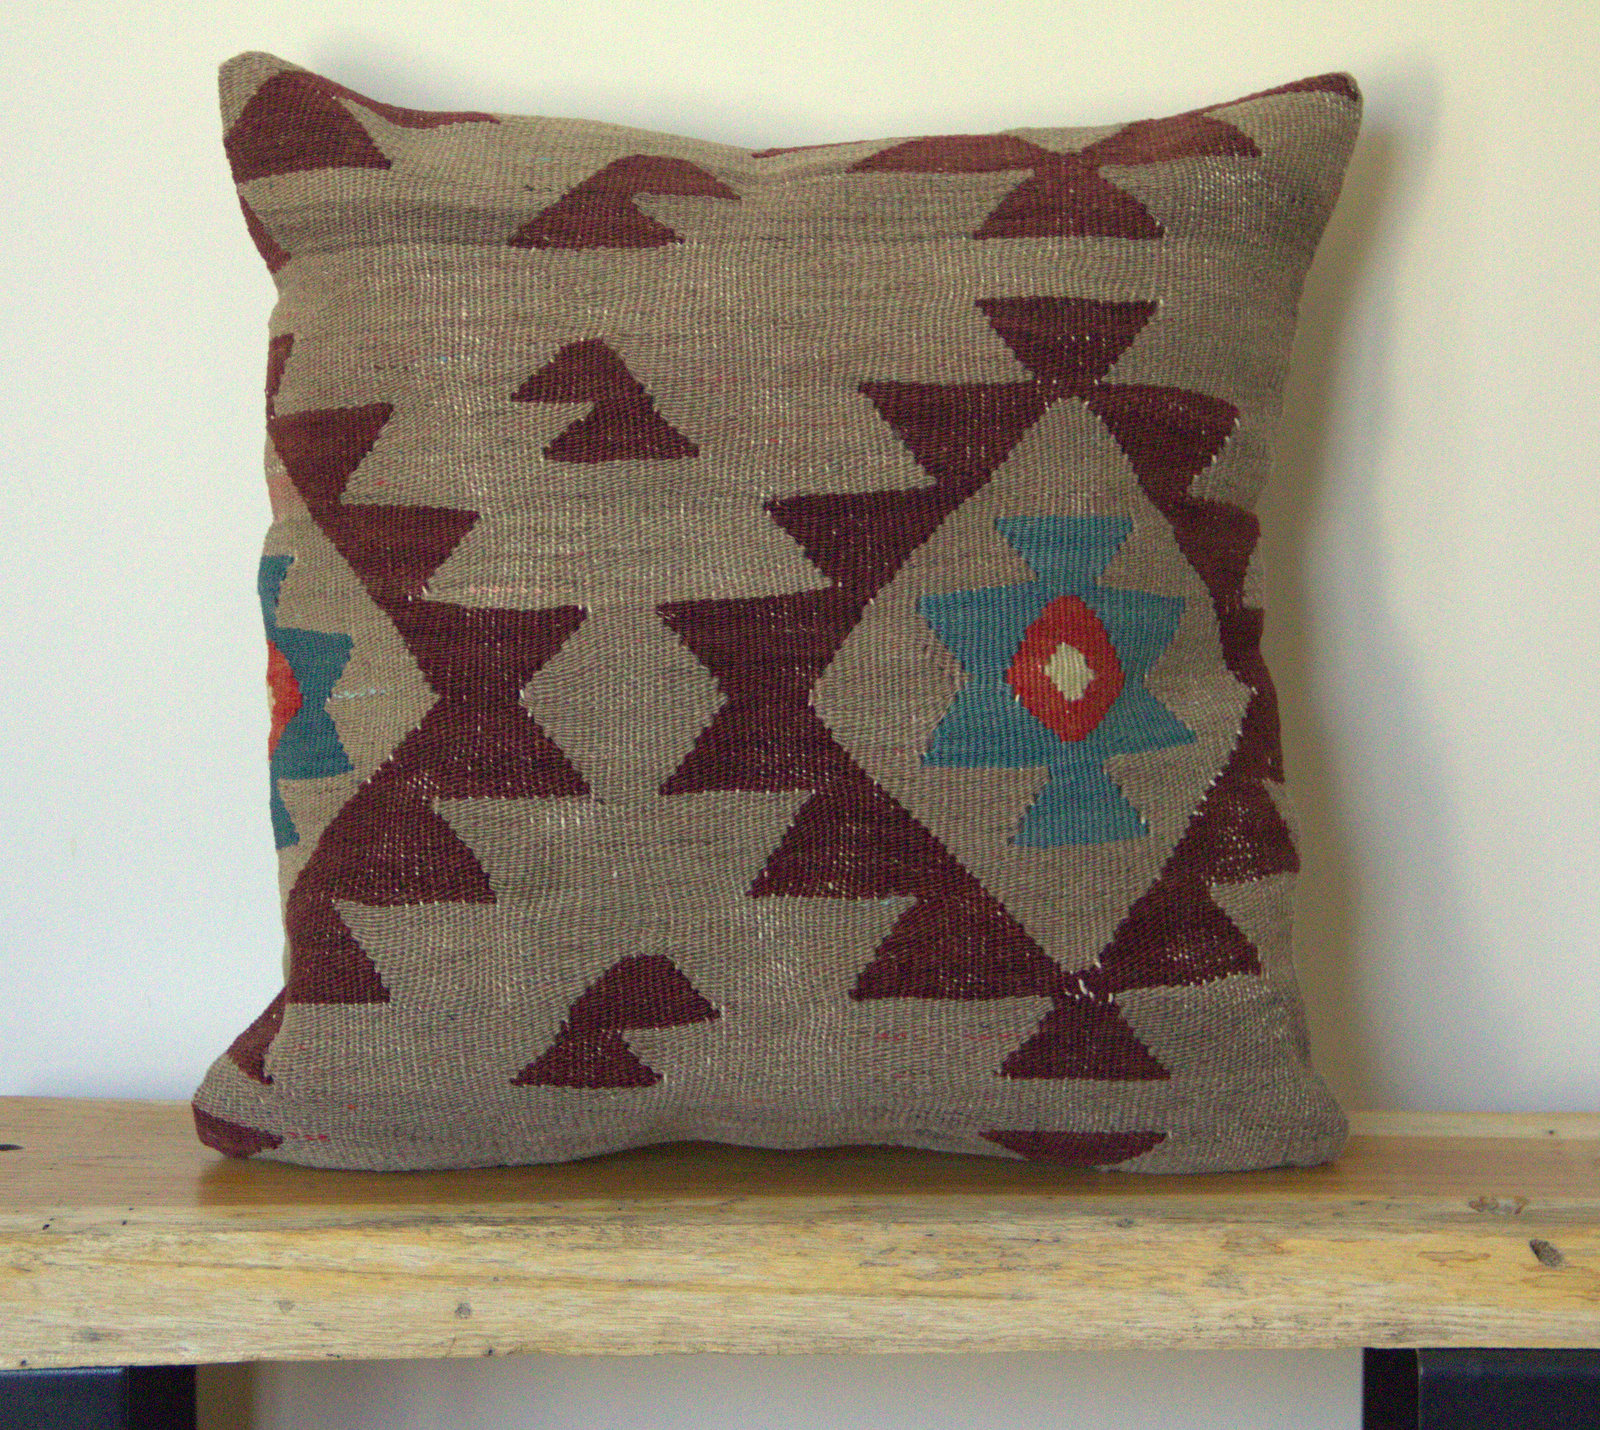 Kilim Pillow Cover - Re-purposed wool kilim. Front side wool, back side cotton.